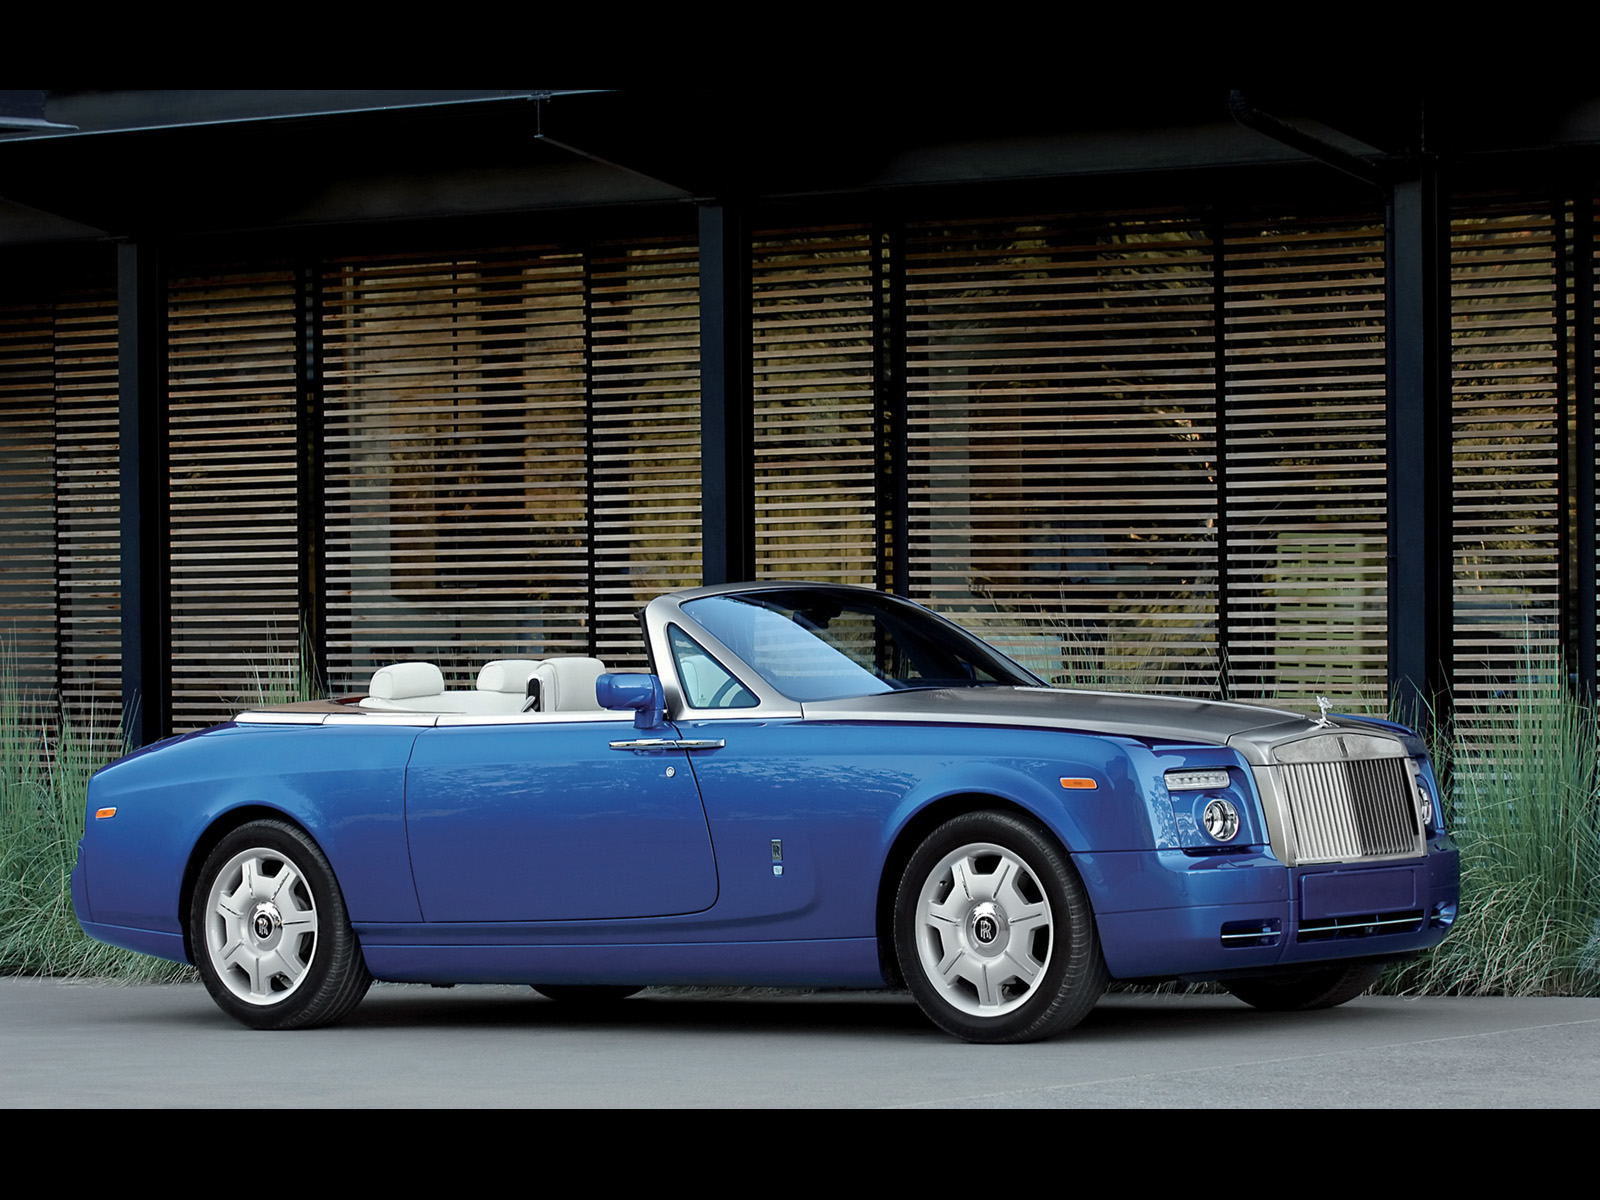 2008 Rolls royce Phantom Drophead Coupe #5